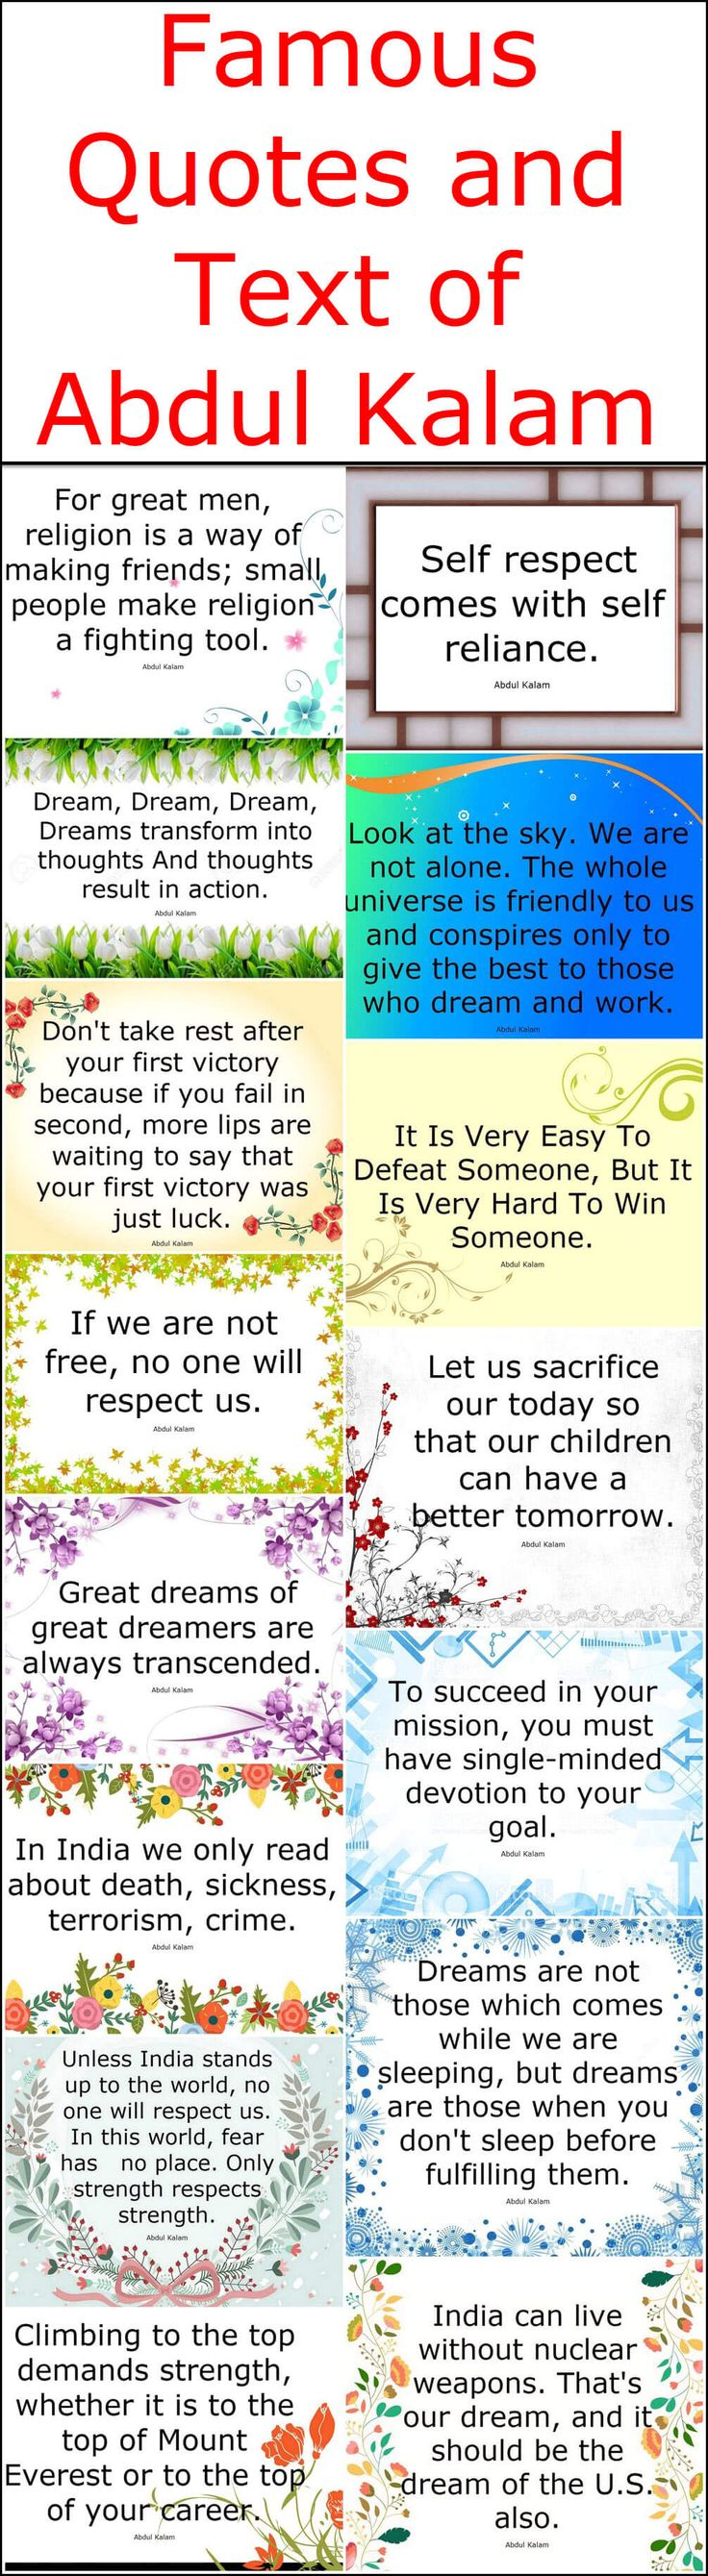 Famous Quotes and Text of Abdul Kalam